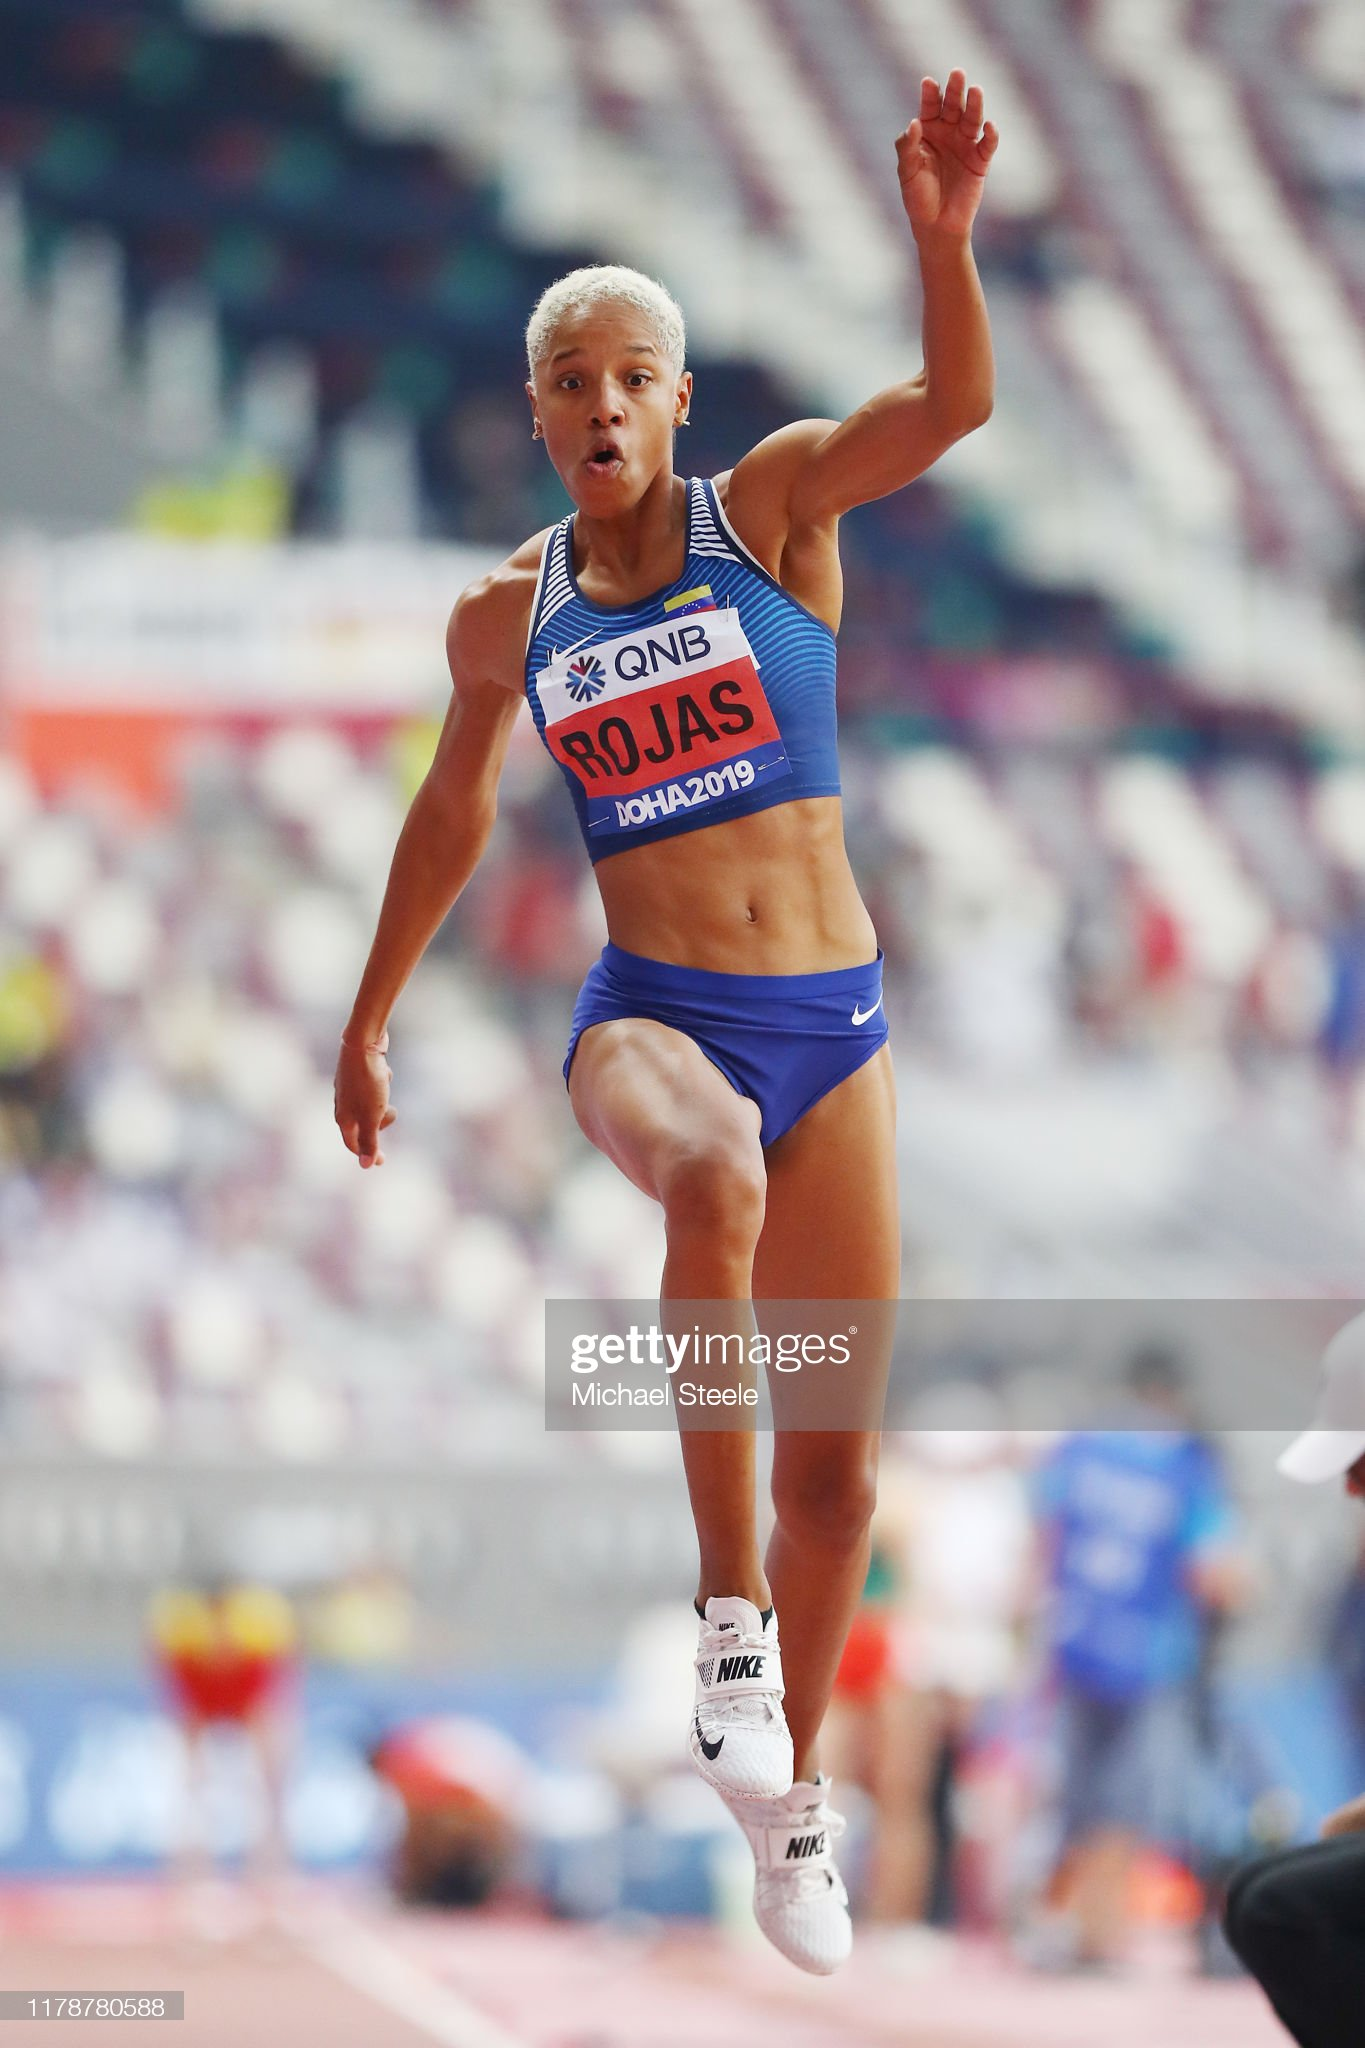 ¿Cuánto mide Yulimar Rojas? - Altura - Real height Yulimar-rojas-of-venezuela-competes-in-the-womens-triple-jump-during-picture-id1178780588?s=2048x2048